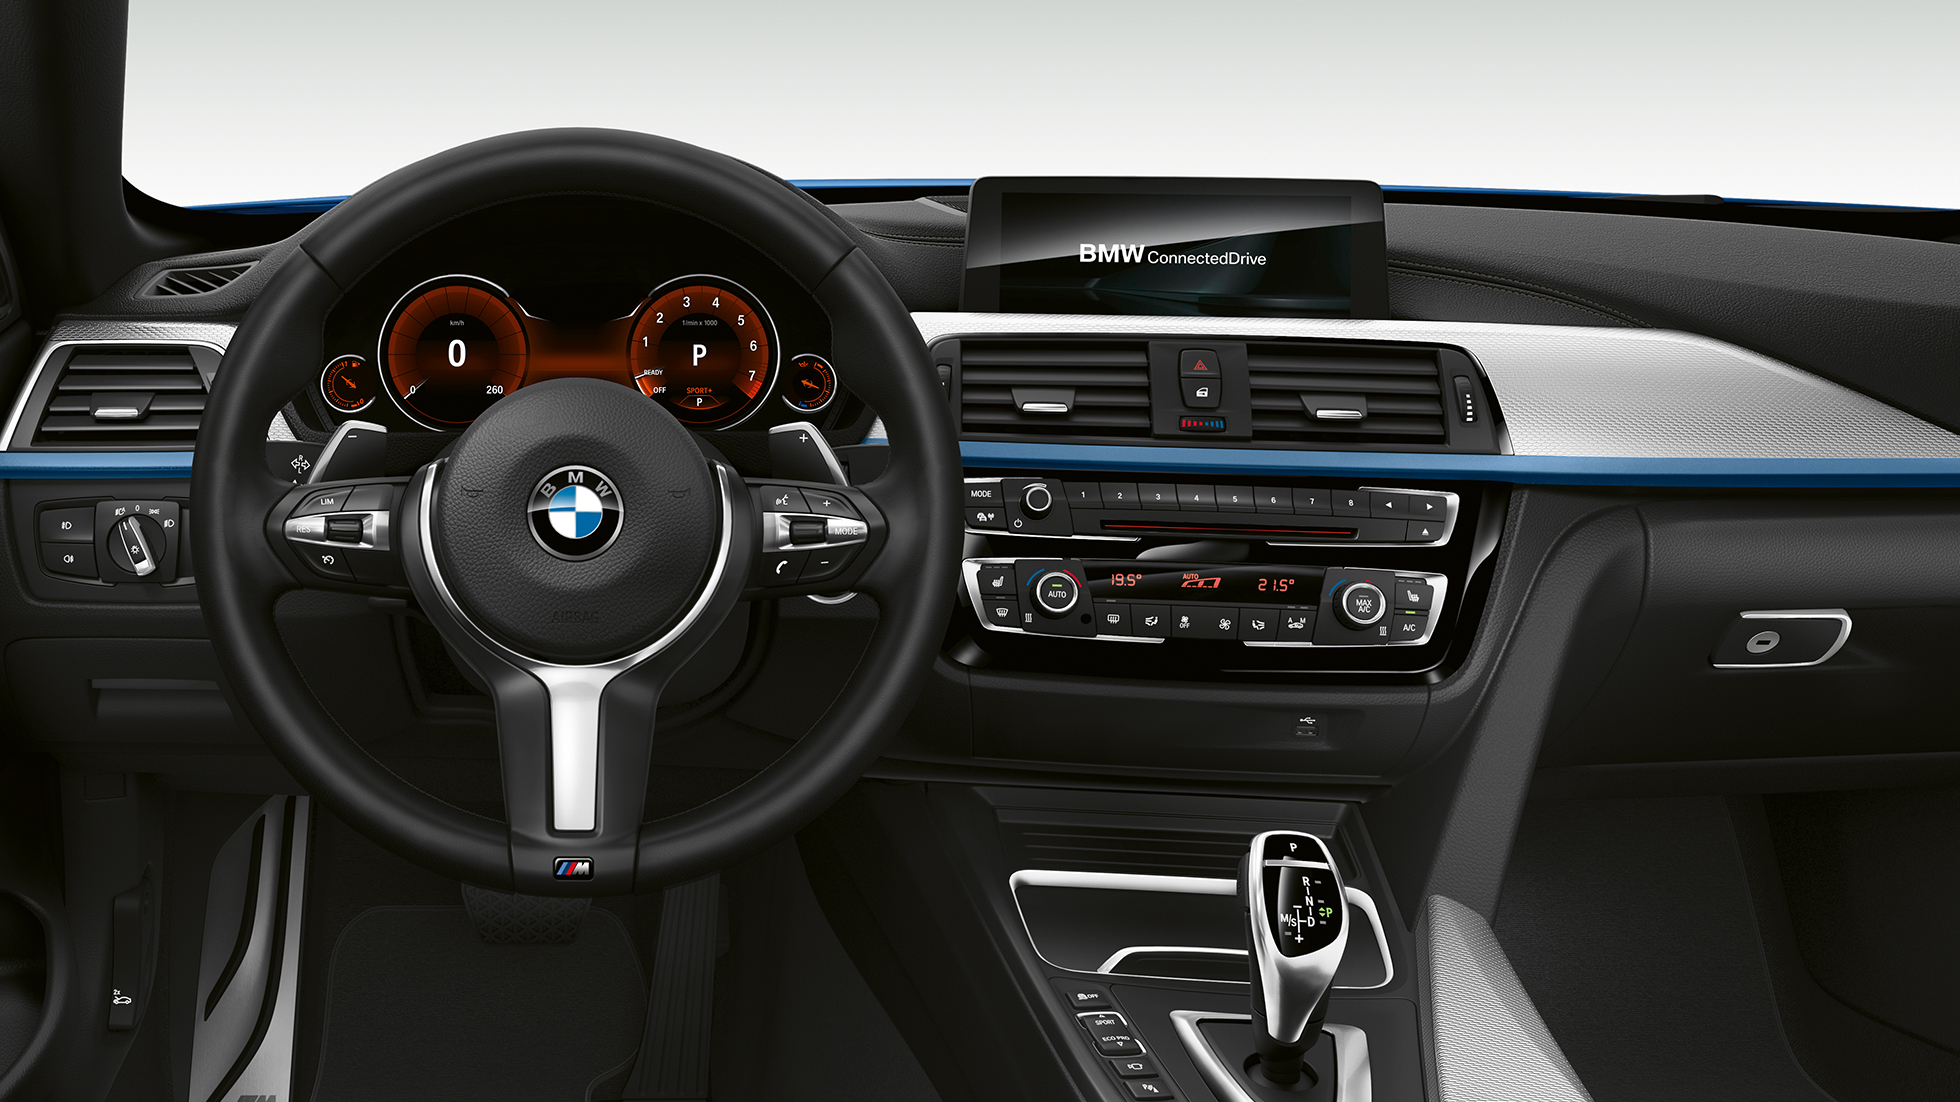 BMW 4 Series Convertible, Model M Sport cockpit